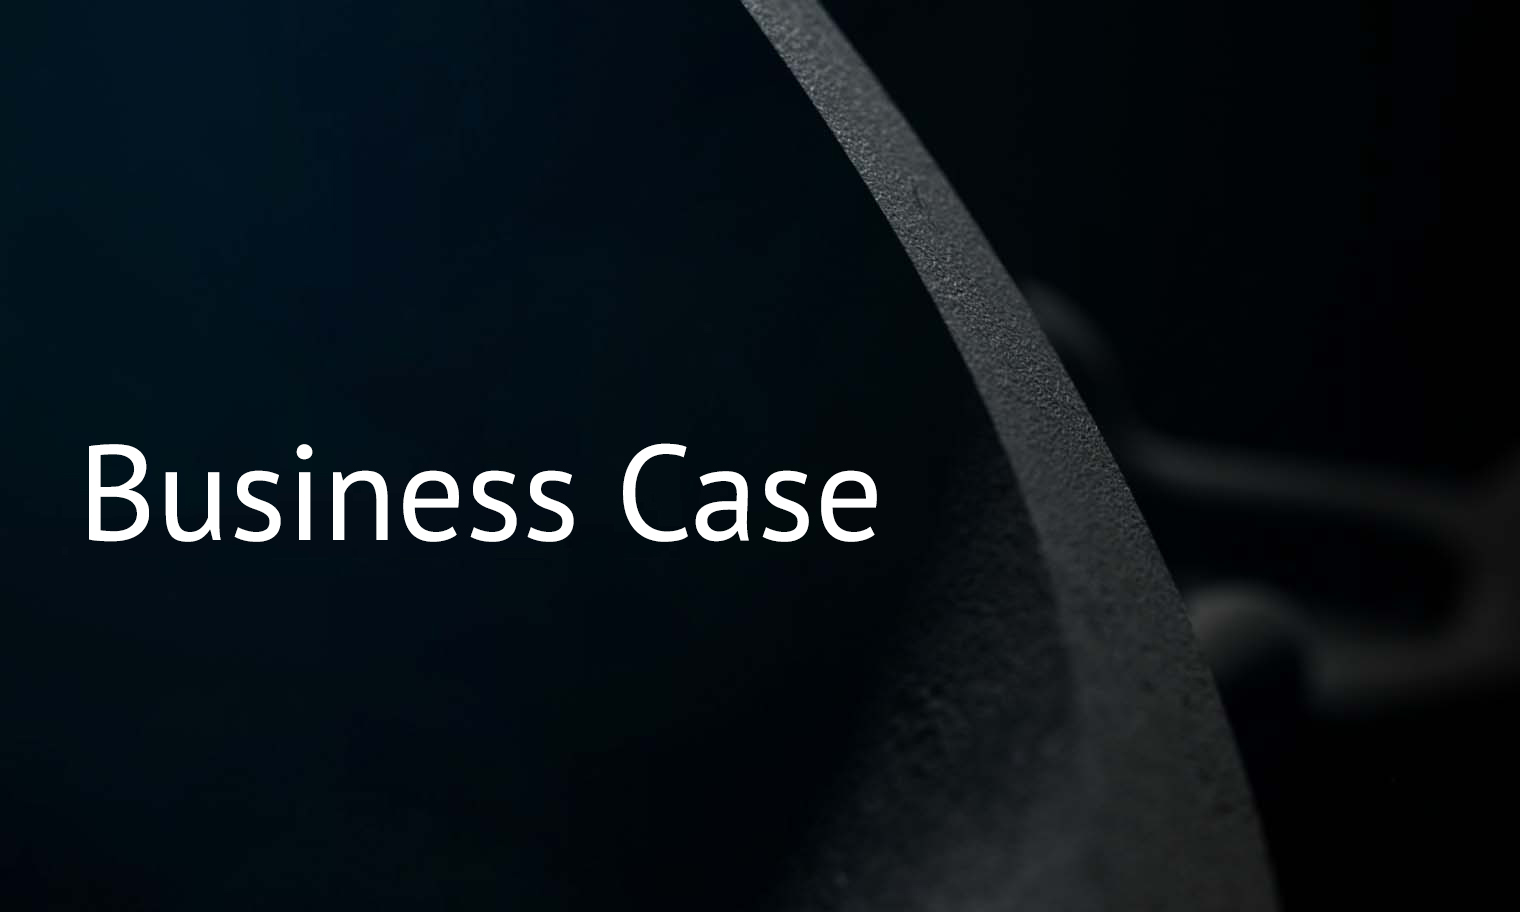 Business Case, our Artificial Intelligence for 3D printing